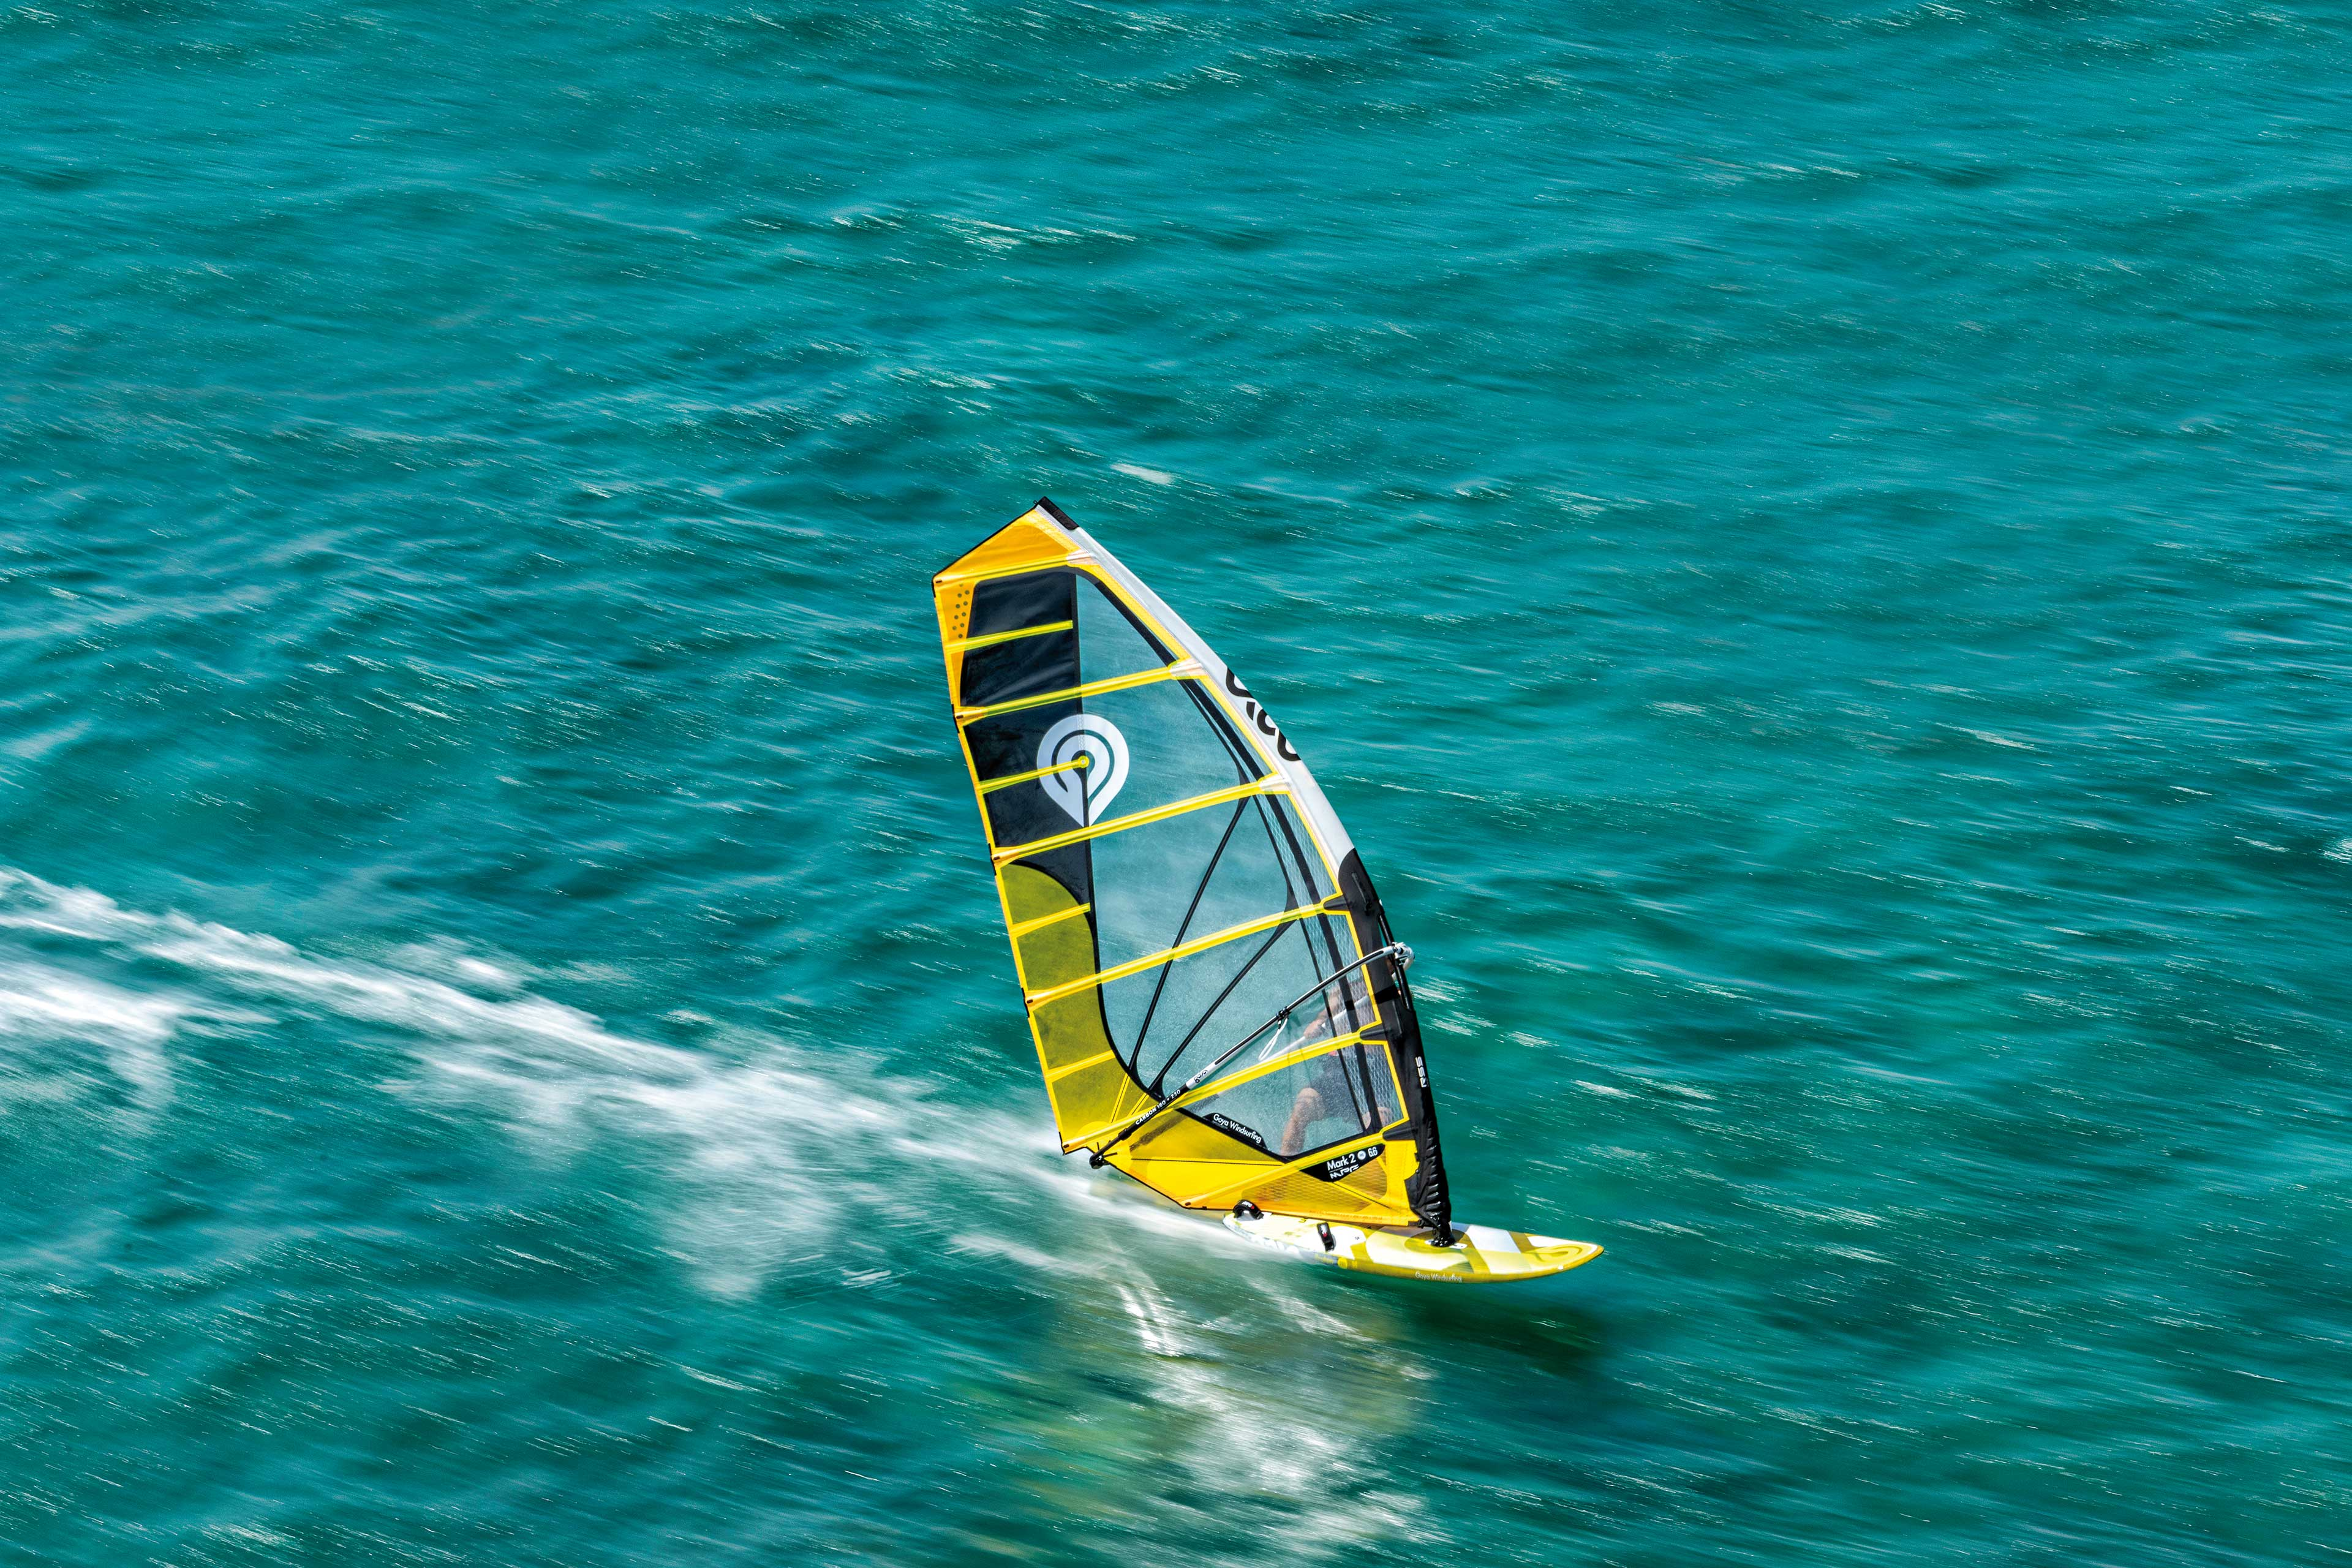 Goya Windsurfing - Sails - Mark 2 Pro